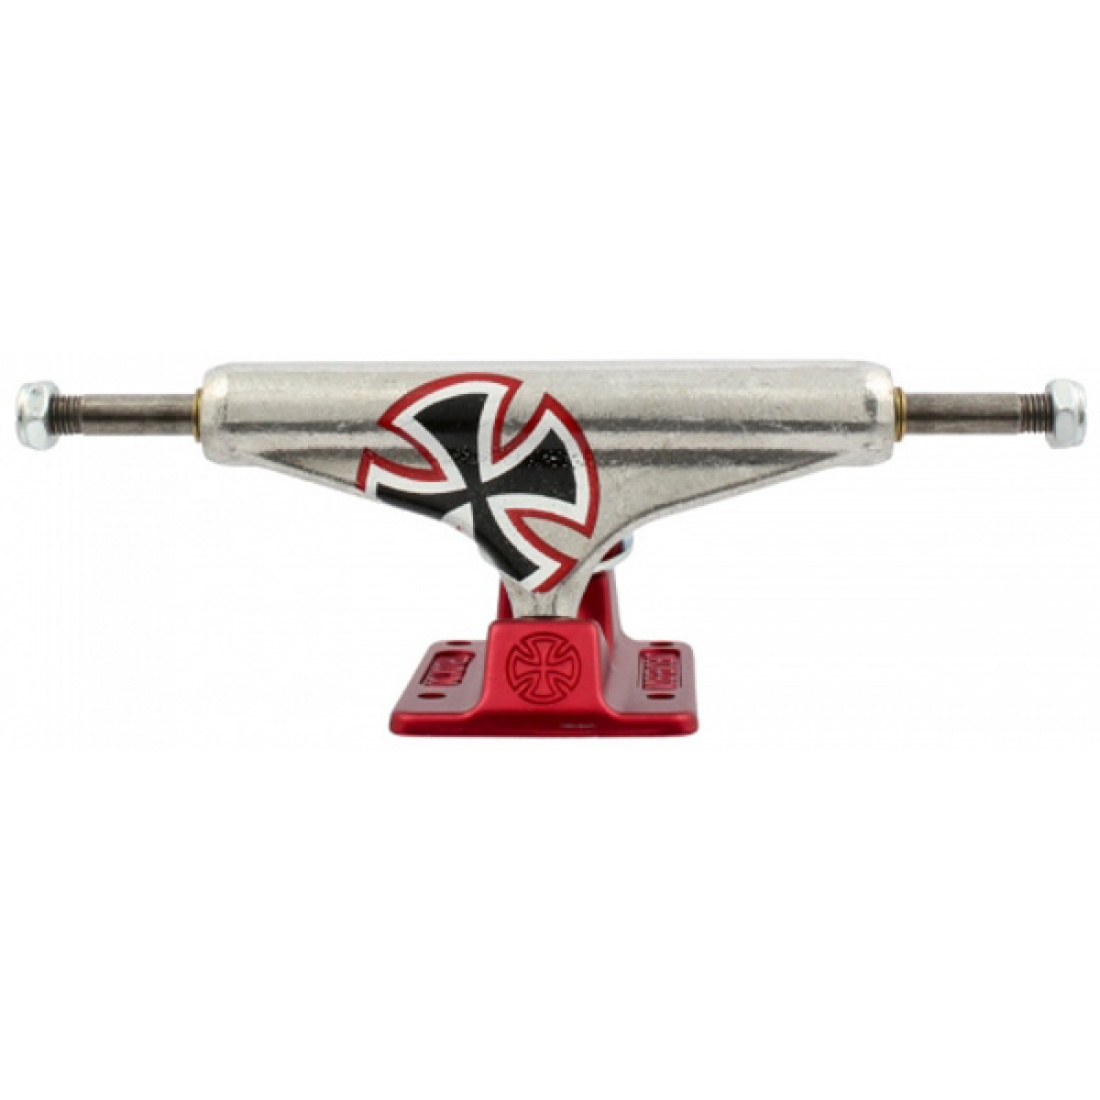 IND-Std Stage 10.5 Forged Hollow Solo Cross Silver/Red 129 Trucks (set of 2)